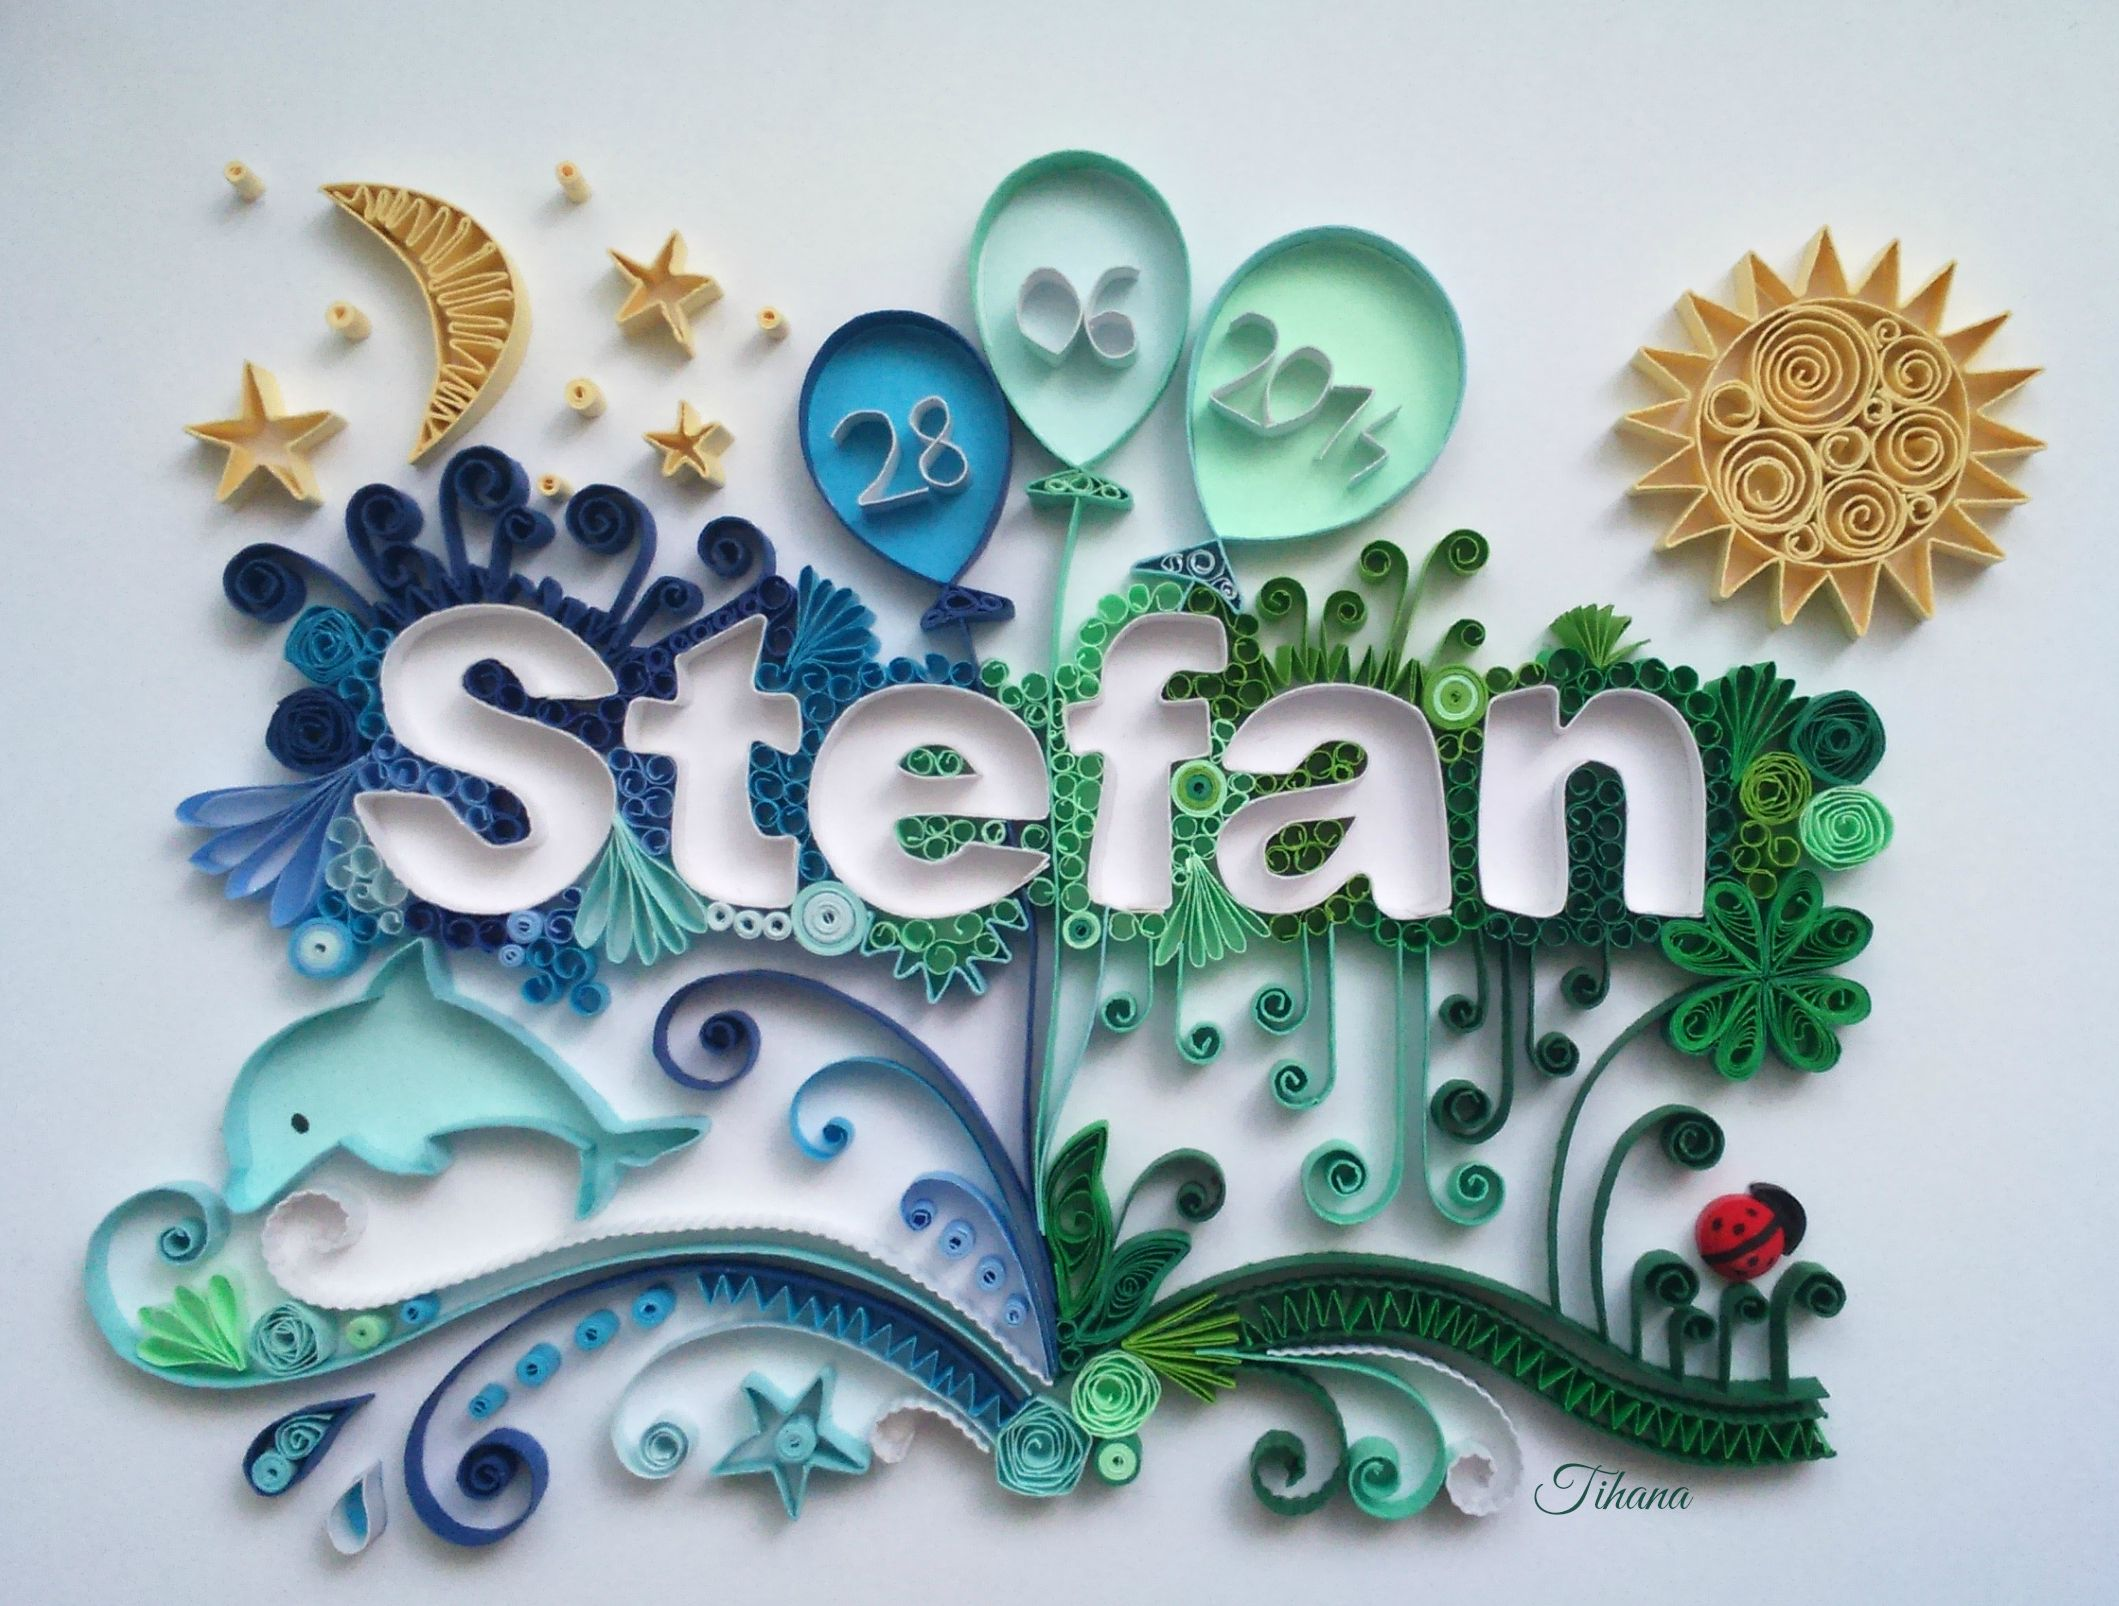 Quilled name stefan quilling moon quilling sun quilling for Quilling strips designs